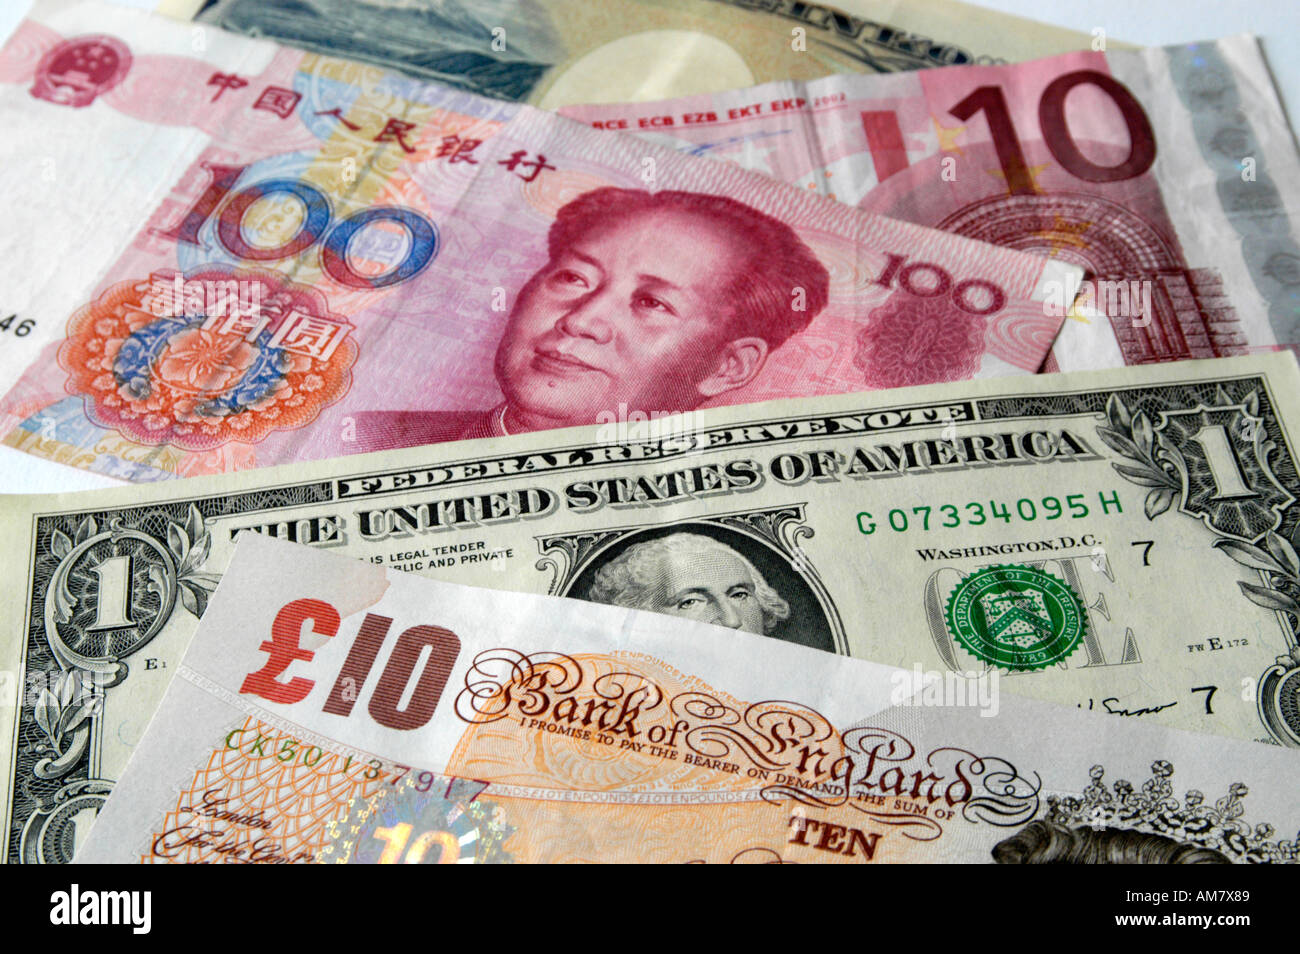 Mix of foreign currency banknotes - Stock Image